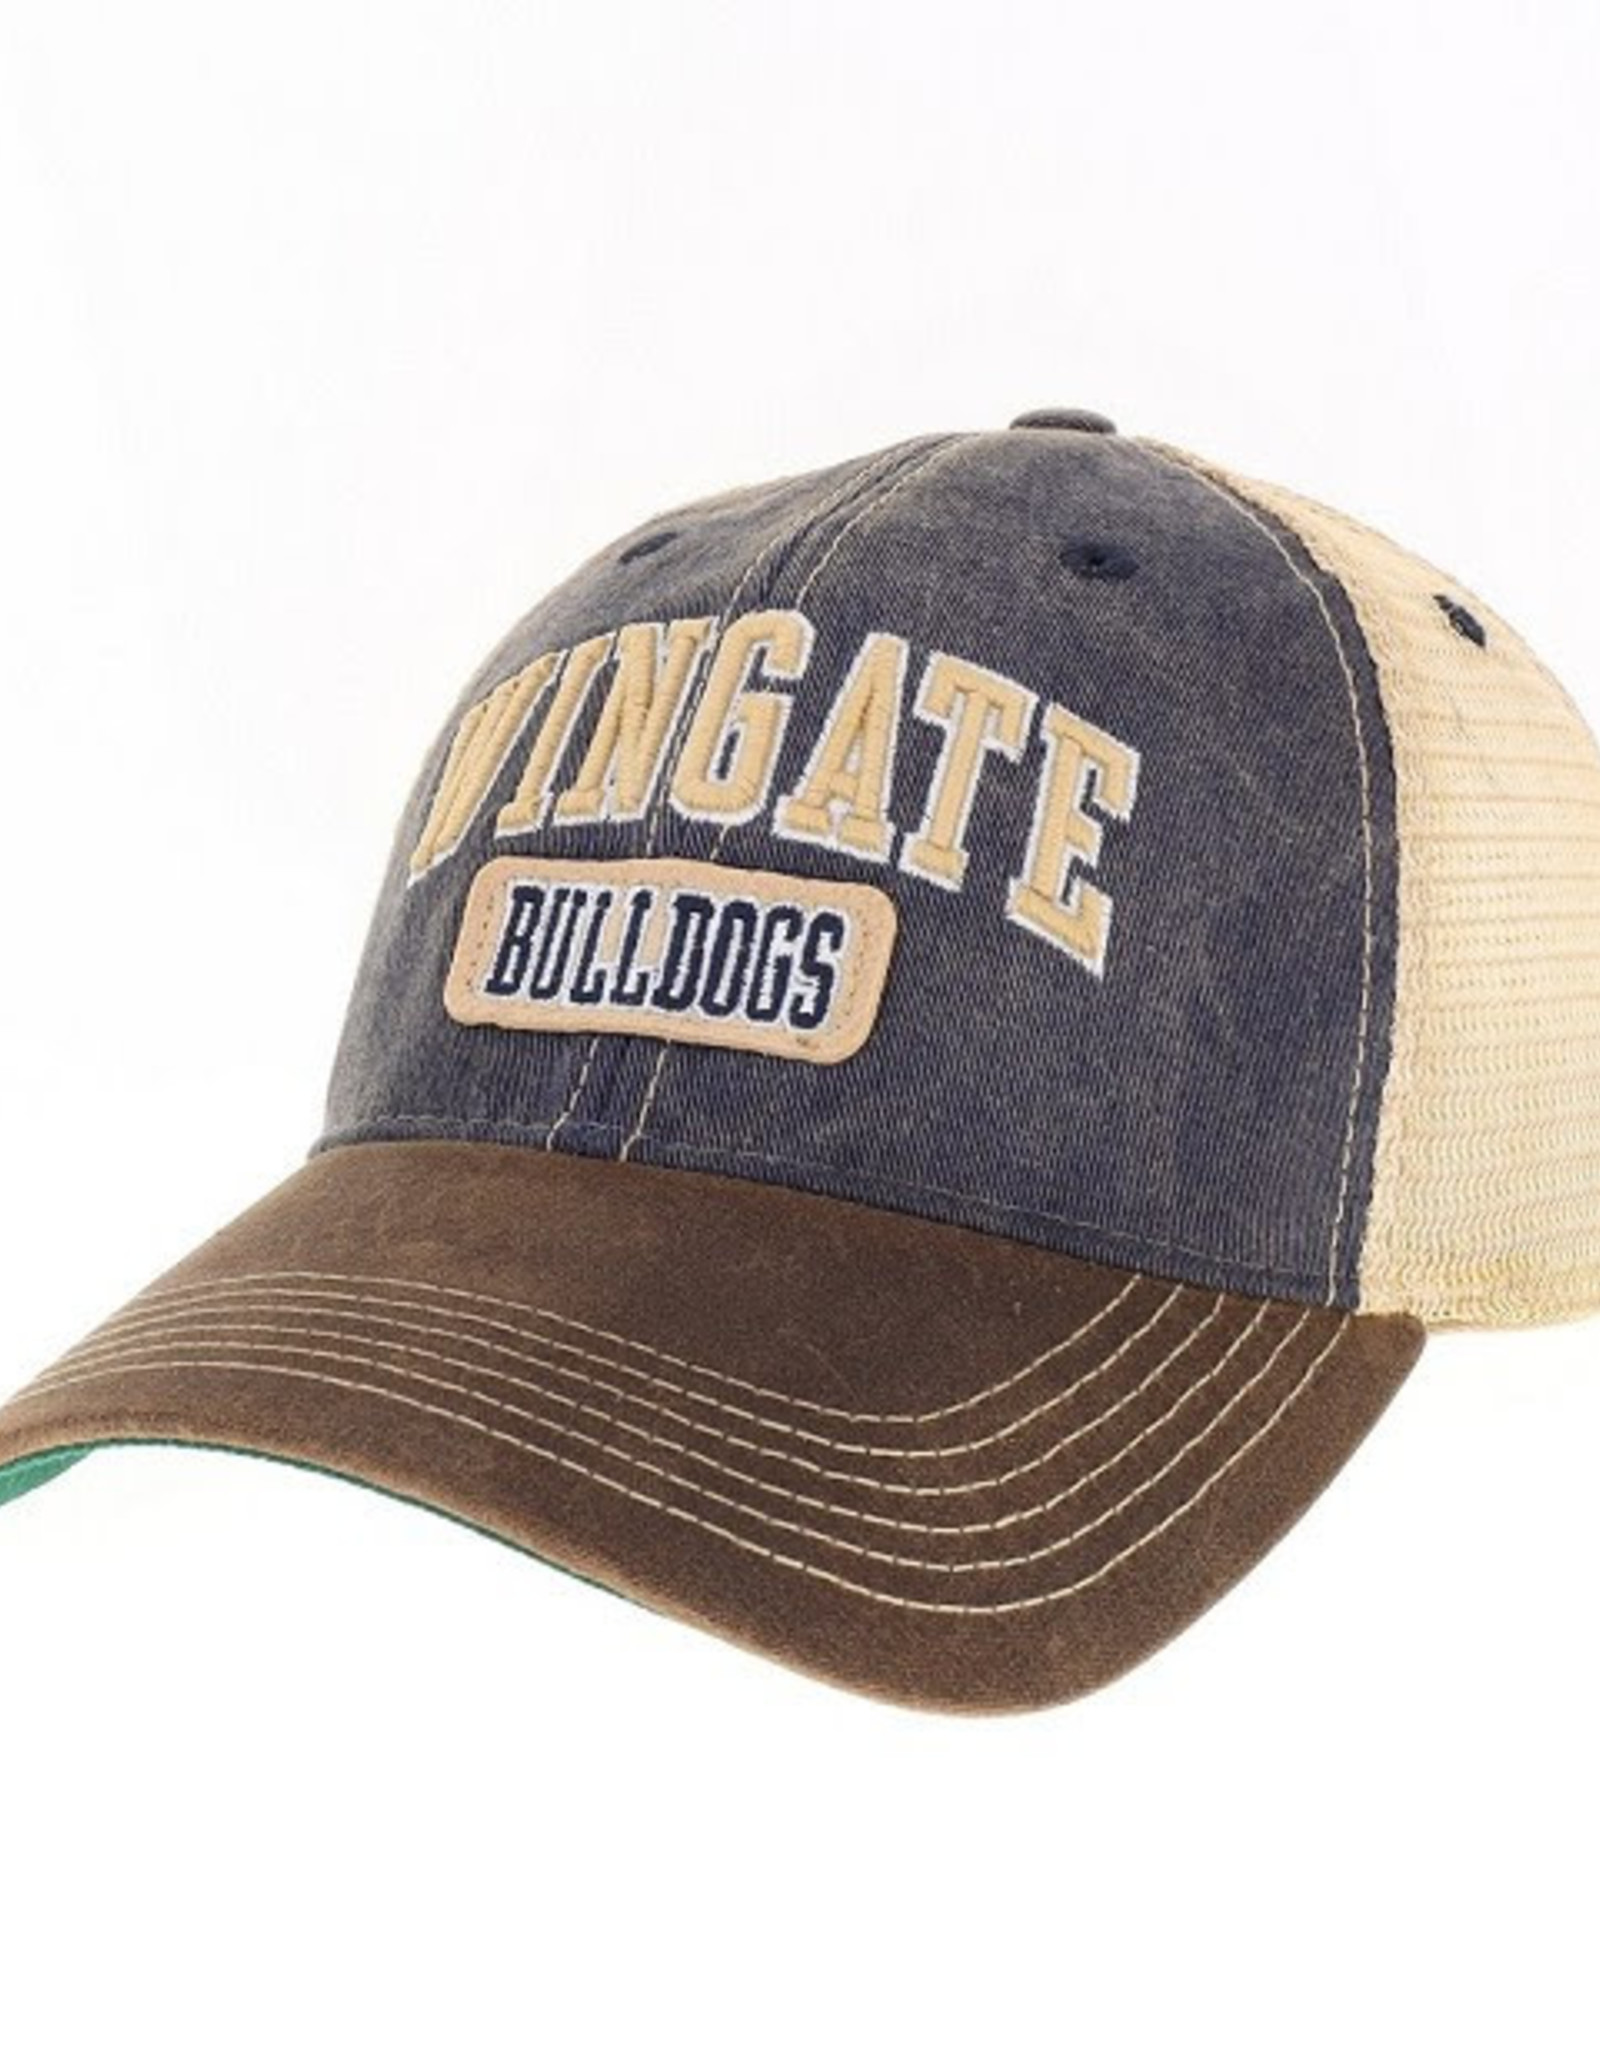 Legacy Navy Brown Wingate Bulldogs Unstructured Snap Back Hat